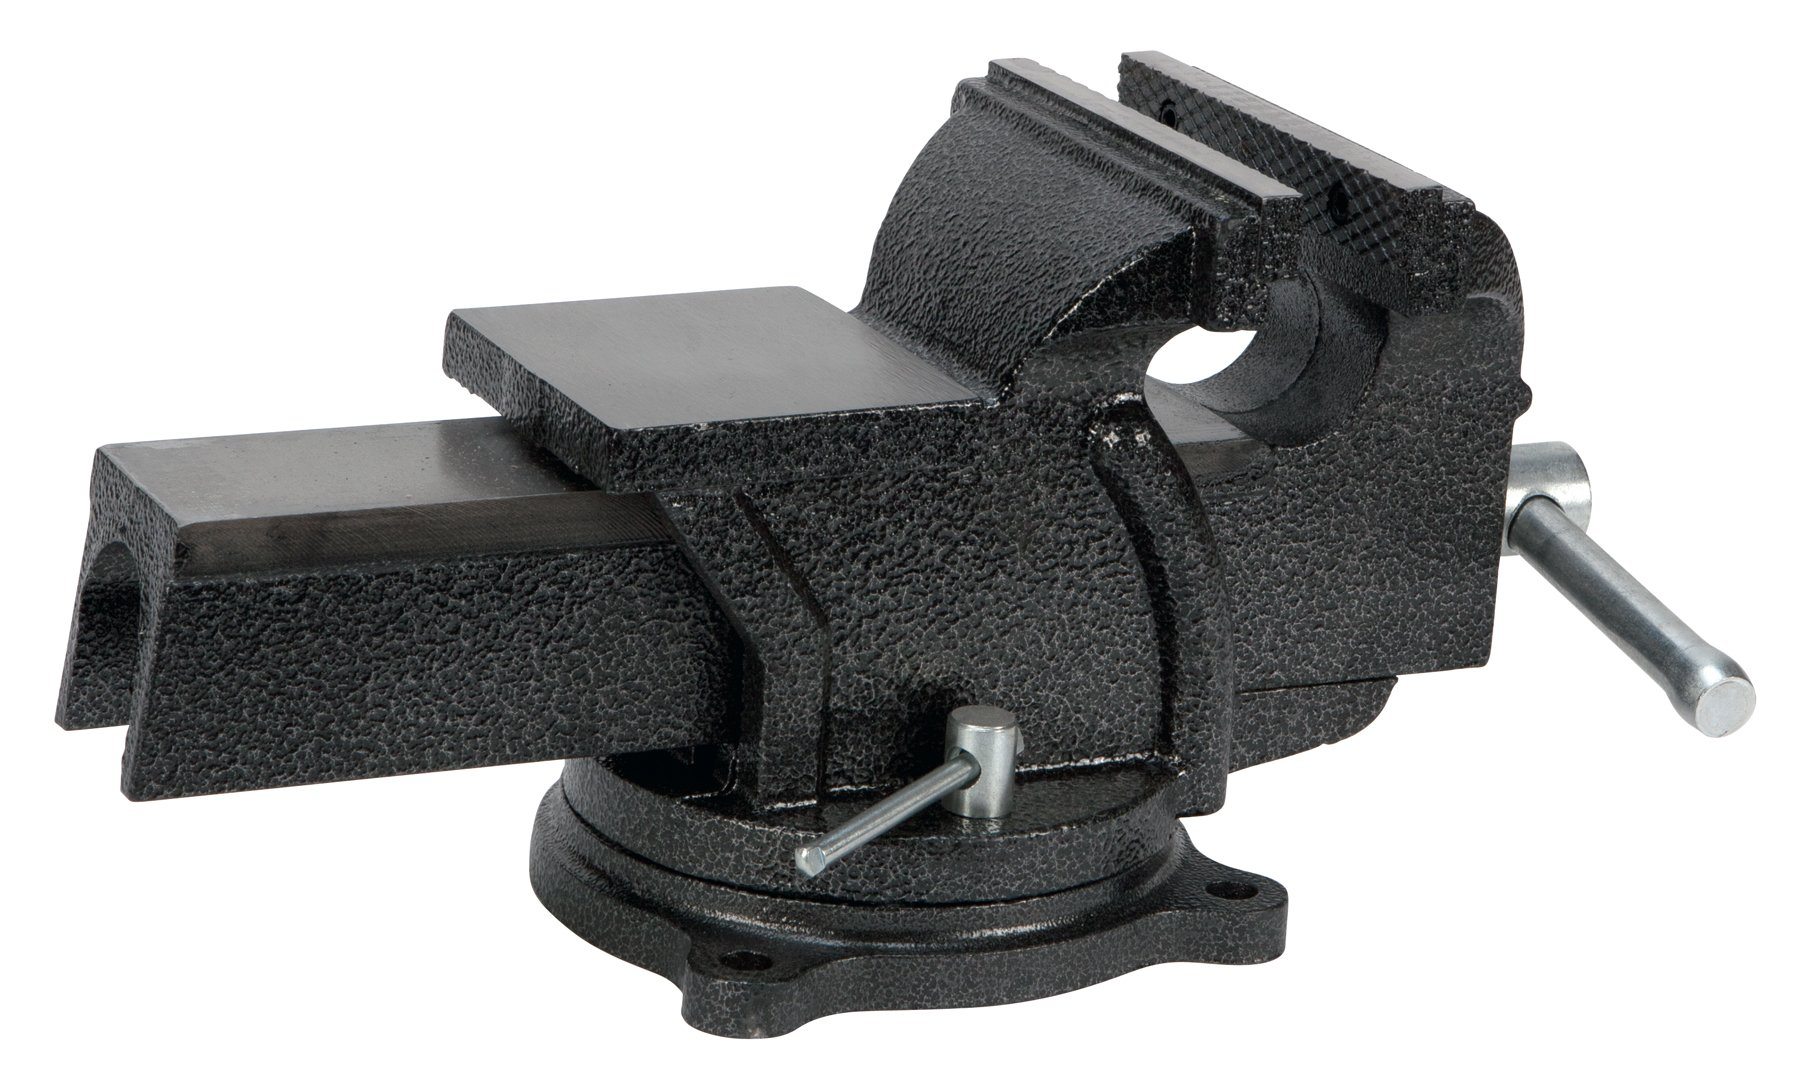 Performance Tool MV6 Hammer Tough 6-Inch Machinist Vise by Performance Tool